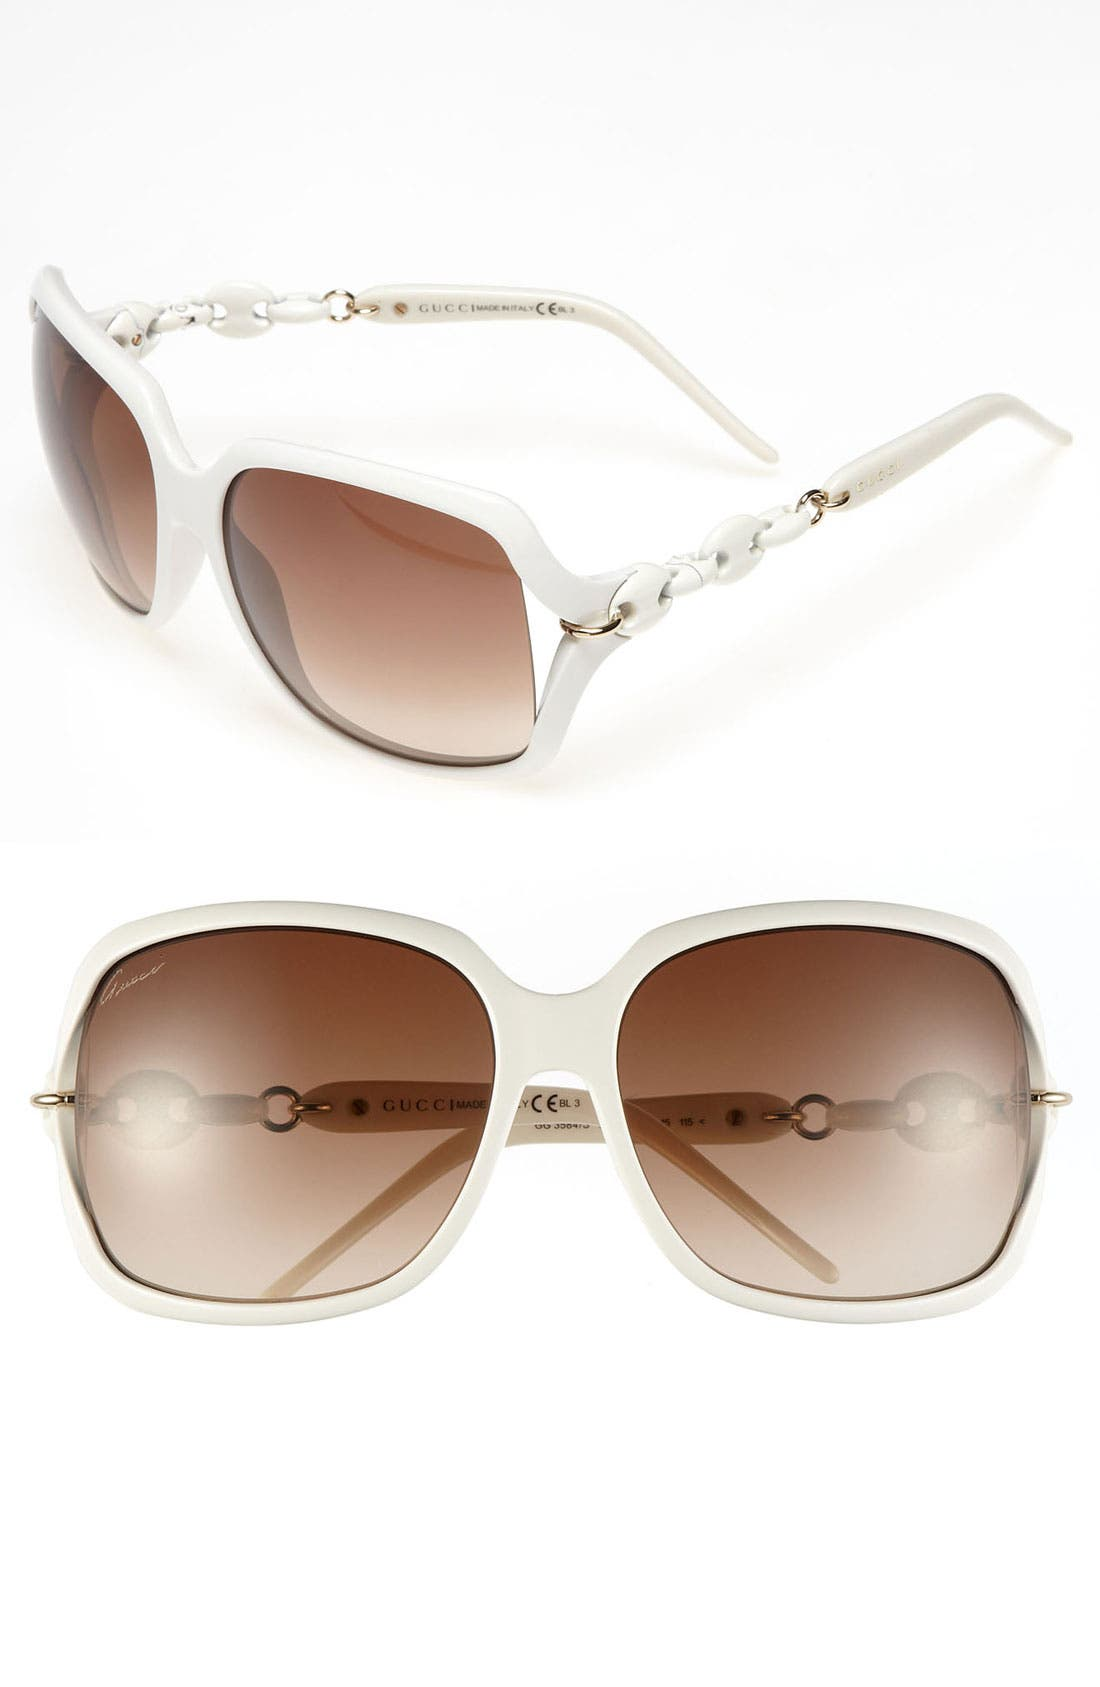 Main Image - Gucci 'Marina Chain' 59mm Oversized Sunglasses